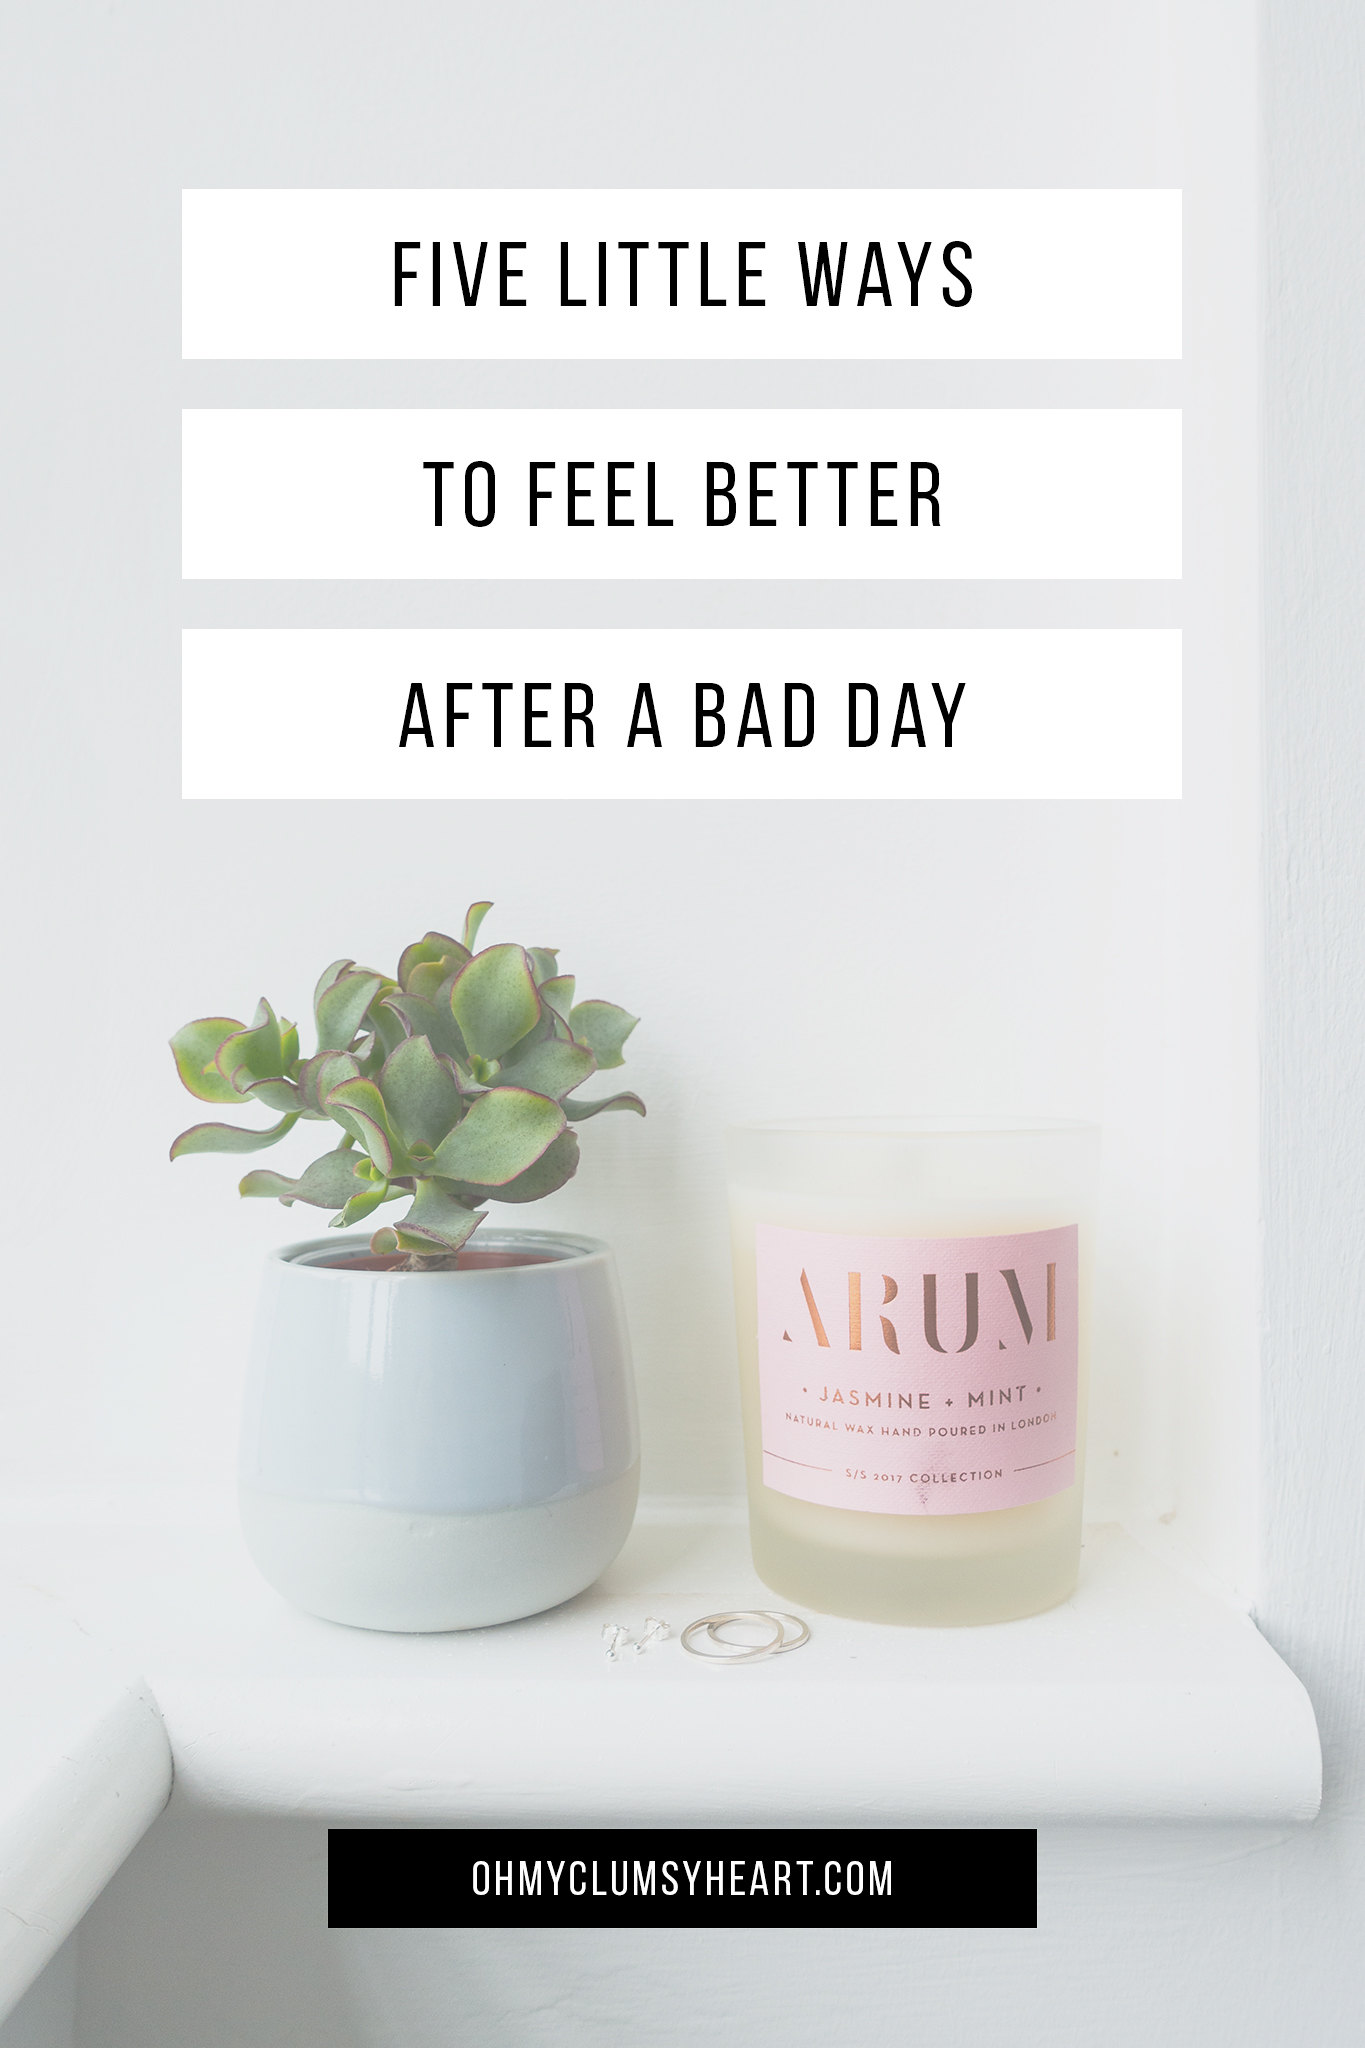 Recovering From A Bad Day: 5 Little Ways To Feel Better